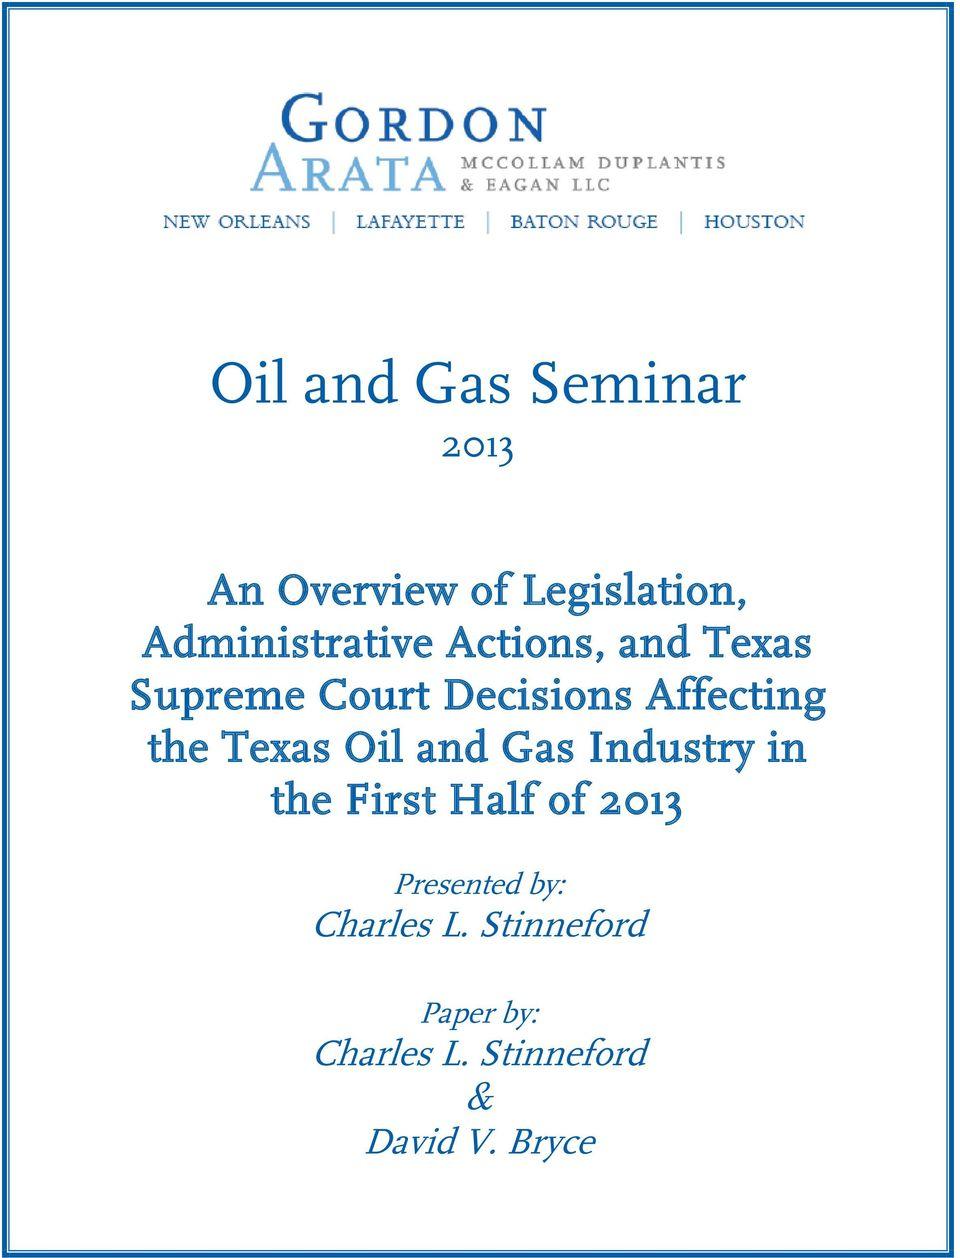 Affecting the Texas Oil and Gas Industry in the First Half of